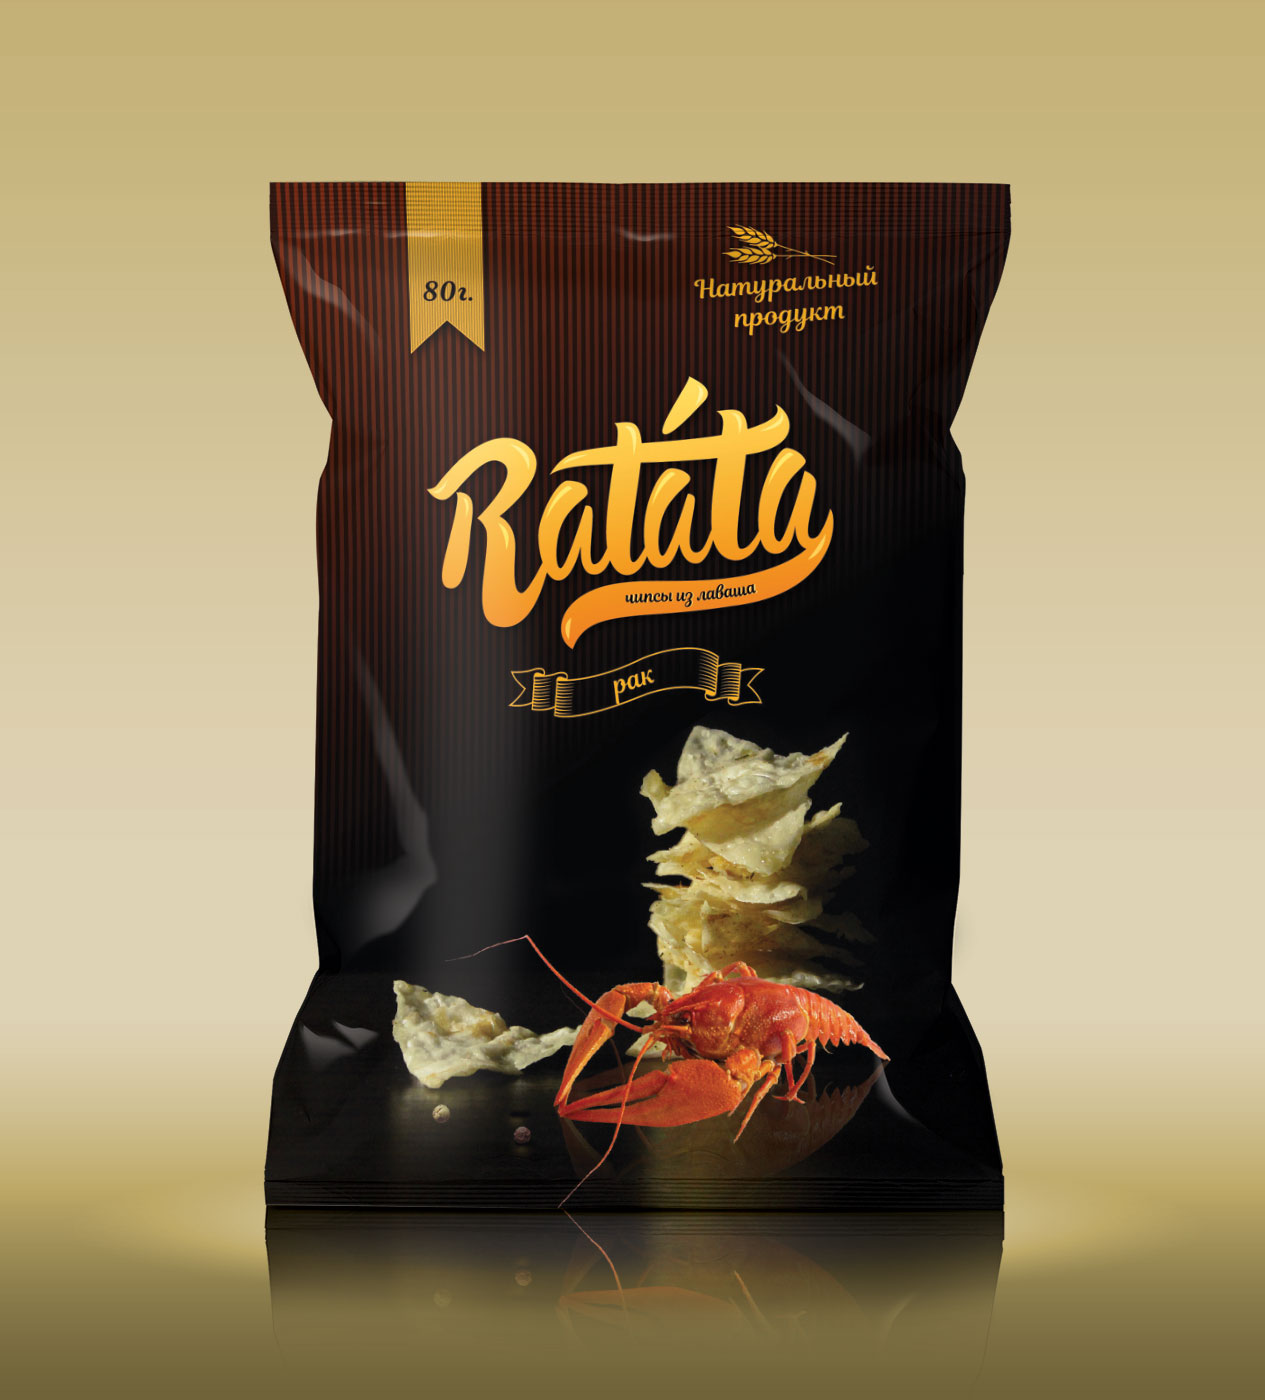 Emballage design til chips Ratatouille